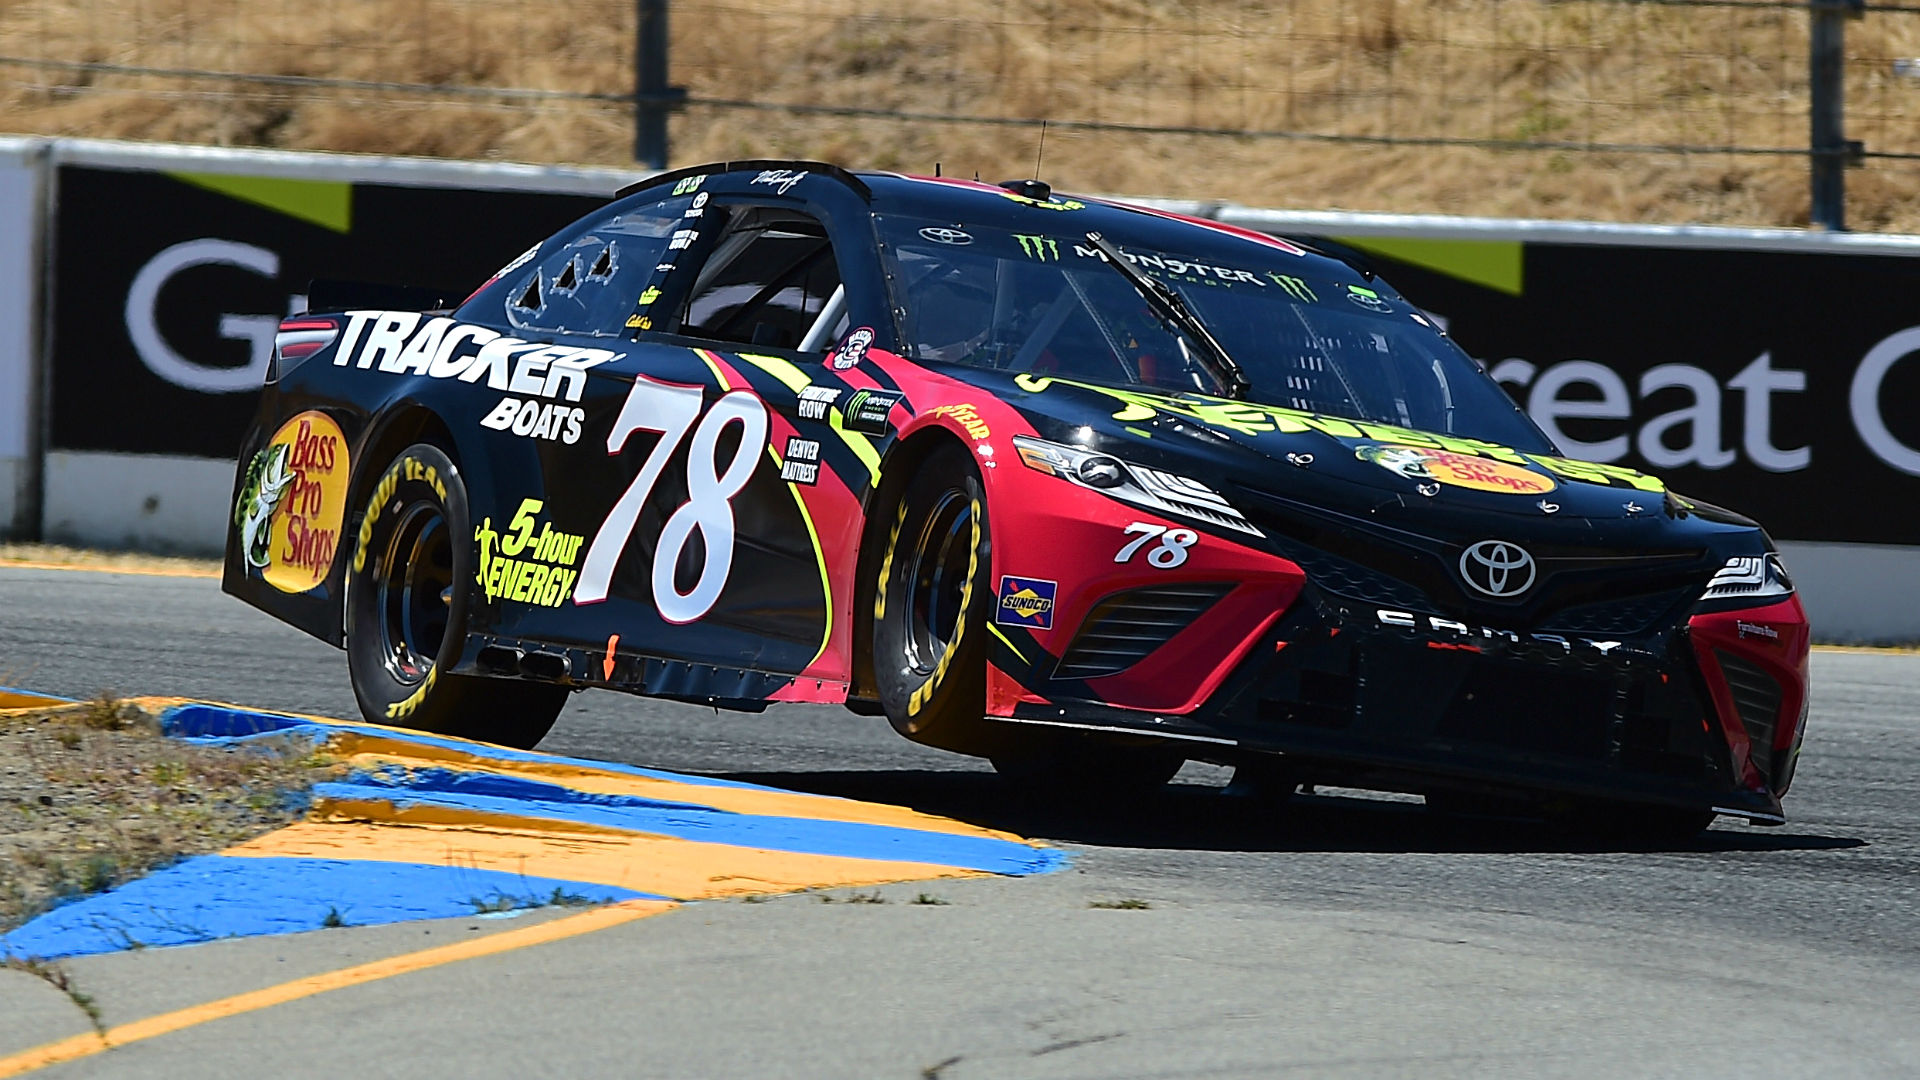 NASCAR results at Sonoma: Martin Truex Jr.'s team uses tricky strategy to win